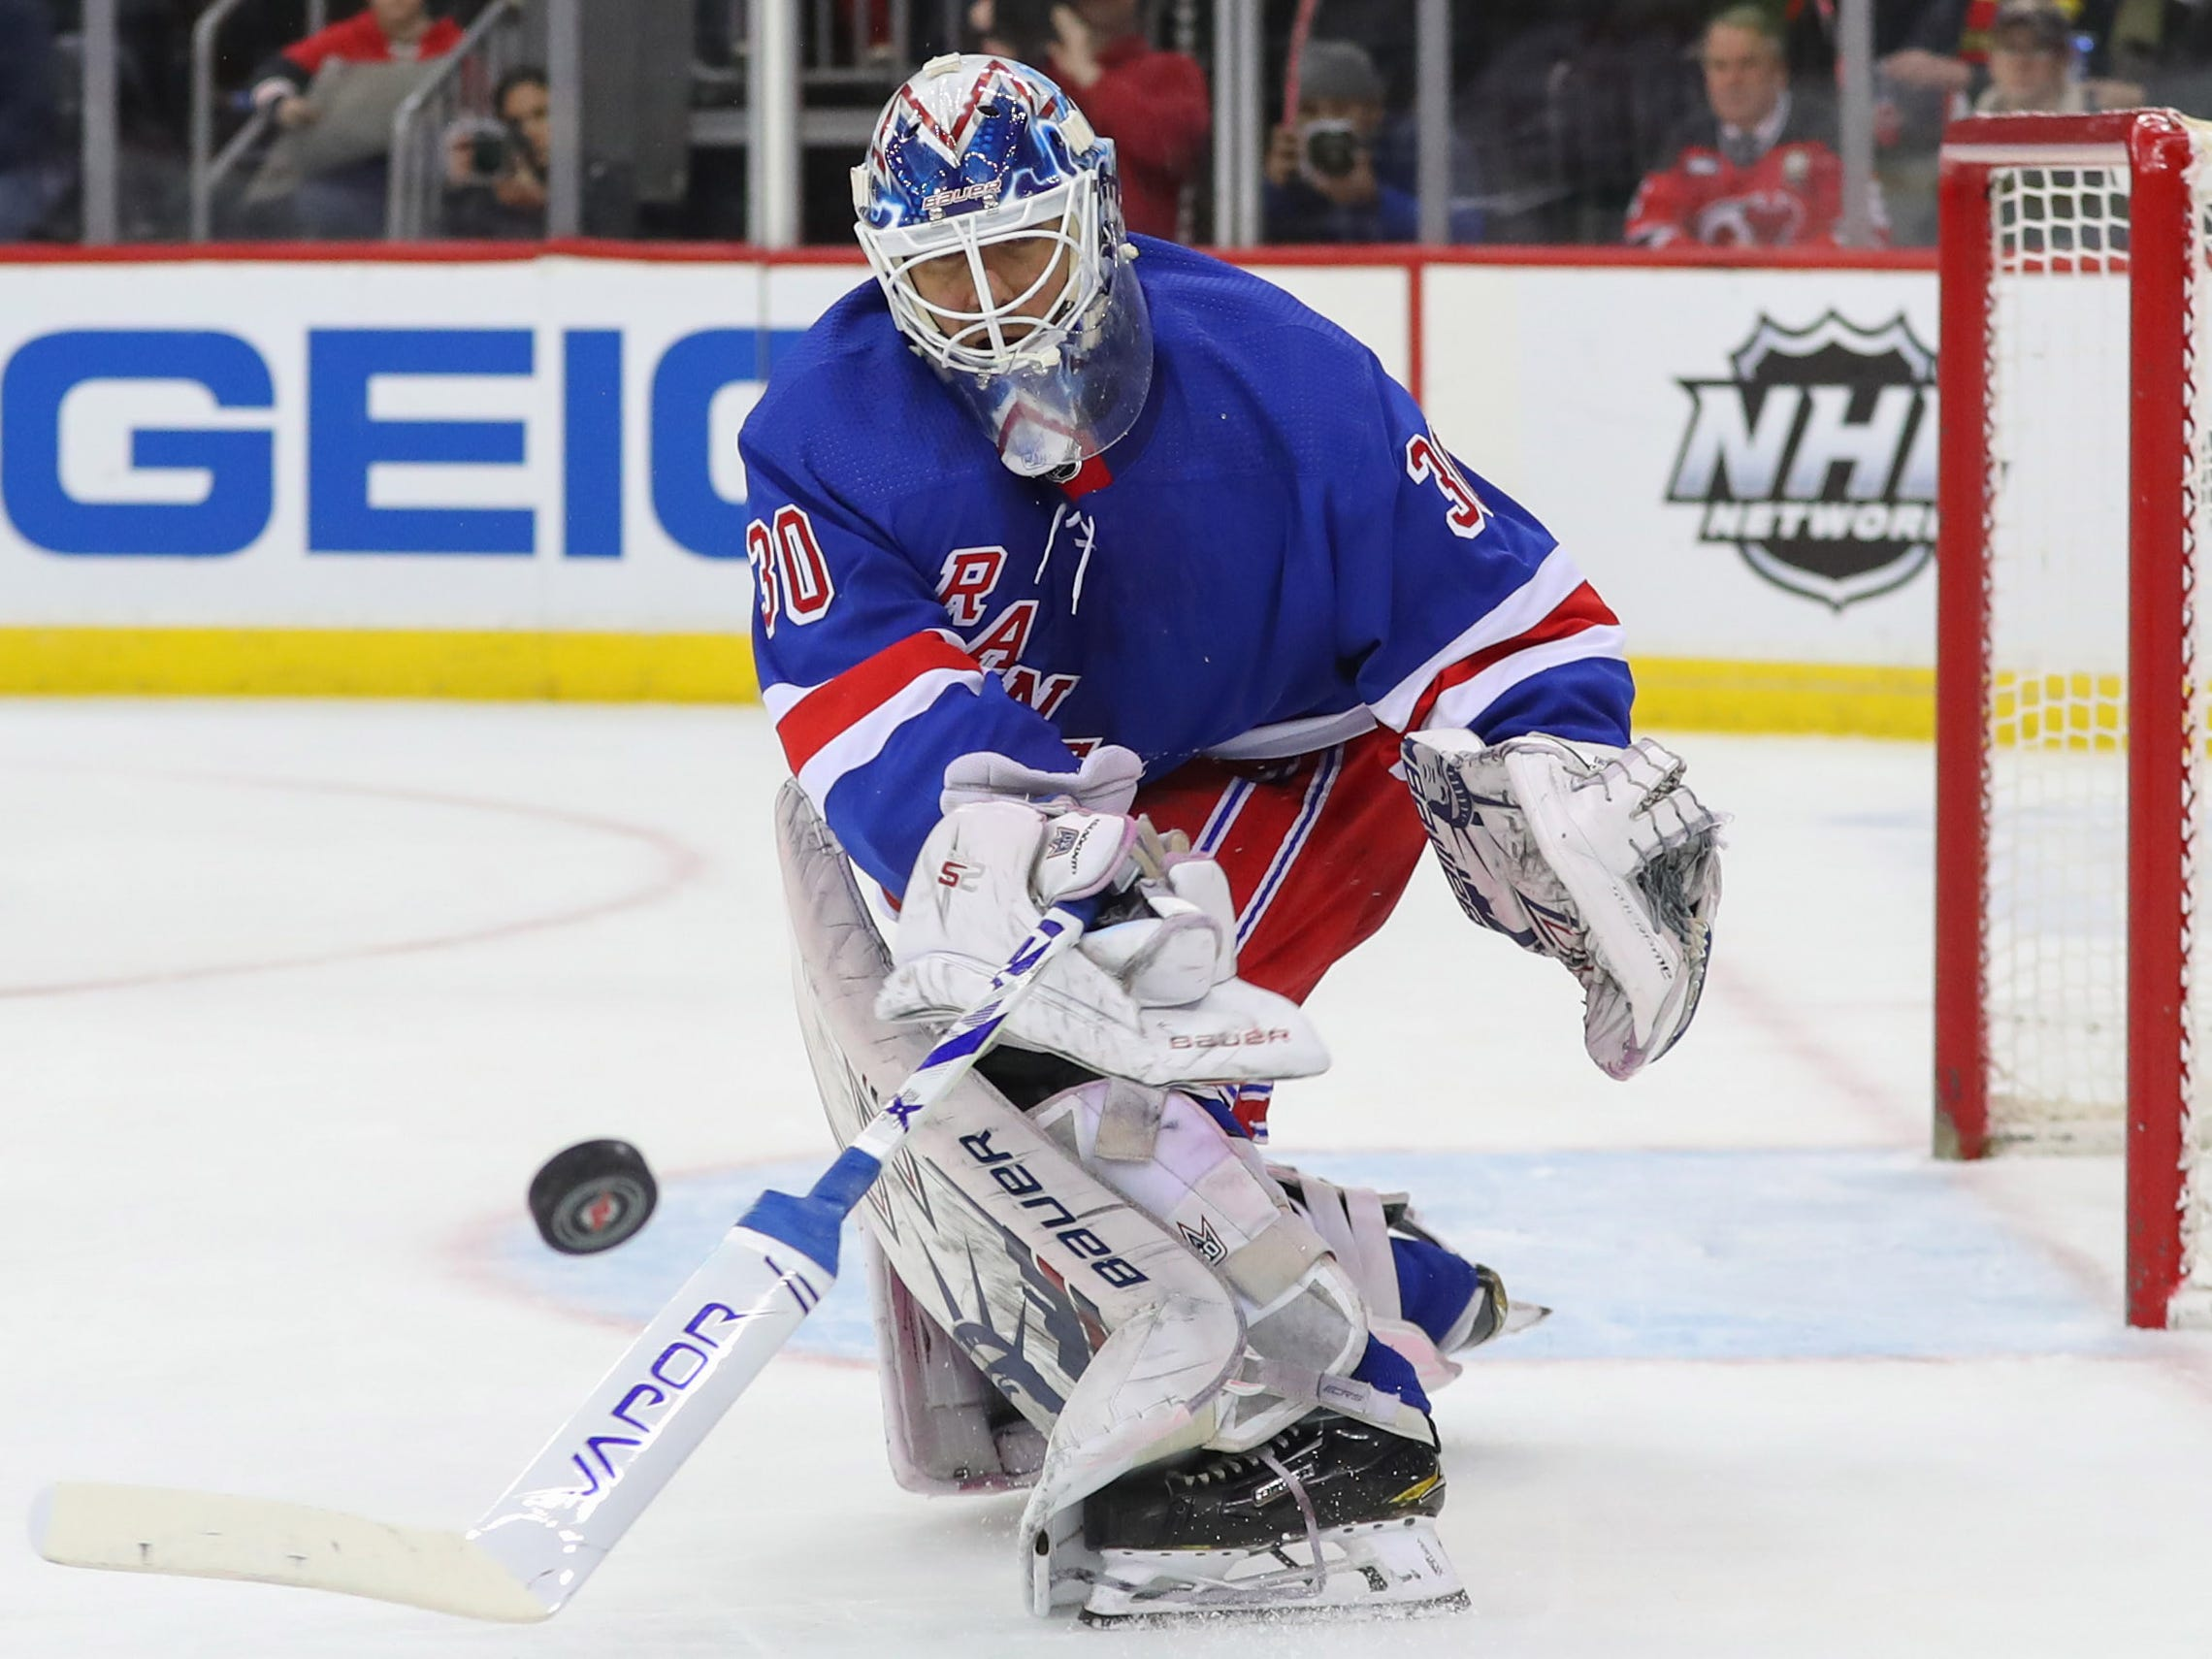 Jan 31, 2019; Newark, NJ, USA; New York Rangers goaltender Henrik Lundqvist (30) plays the puck during the second period of their game against the New Jersey Devils at Prudential Center.